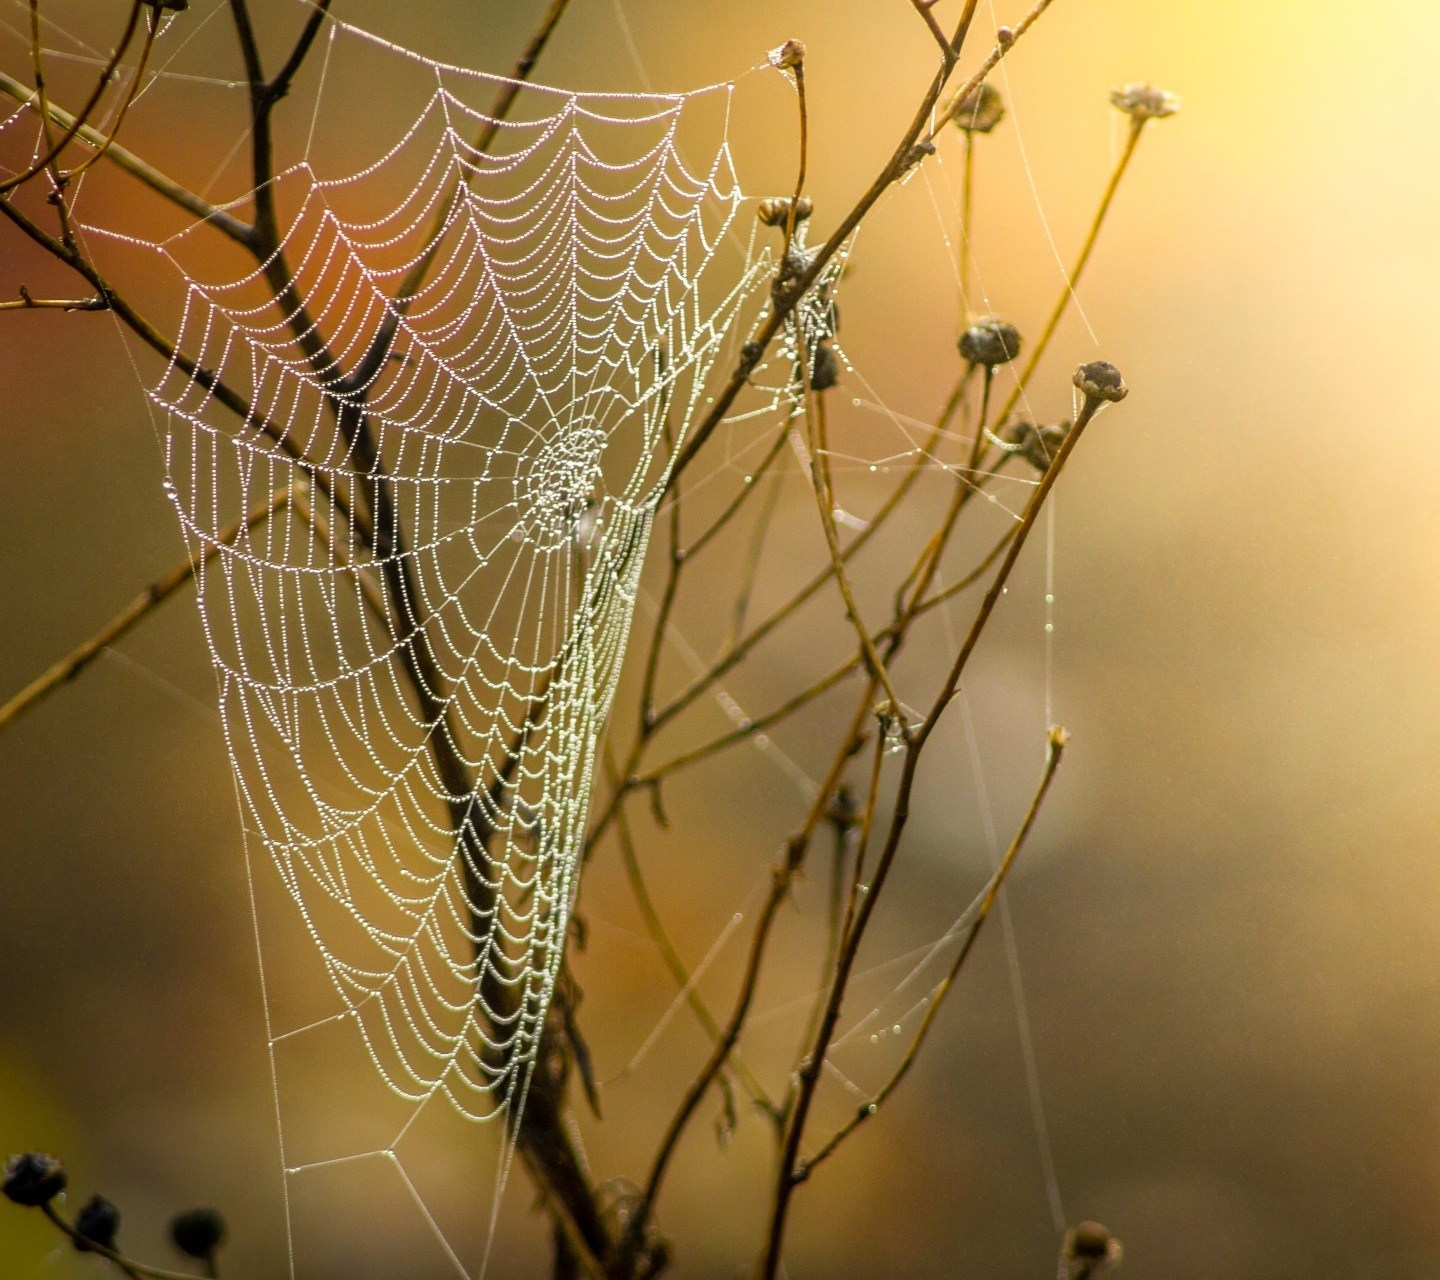 Webbed – Haiku